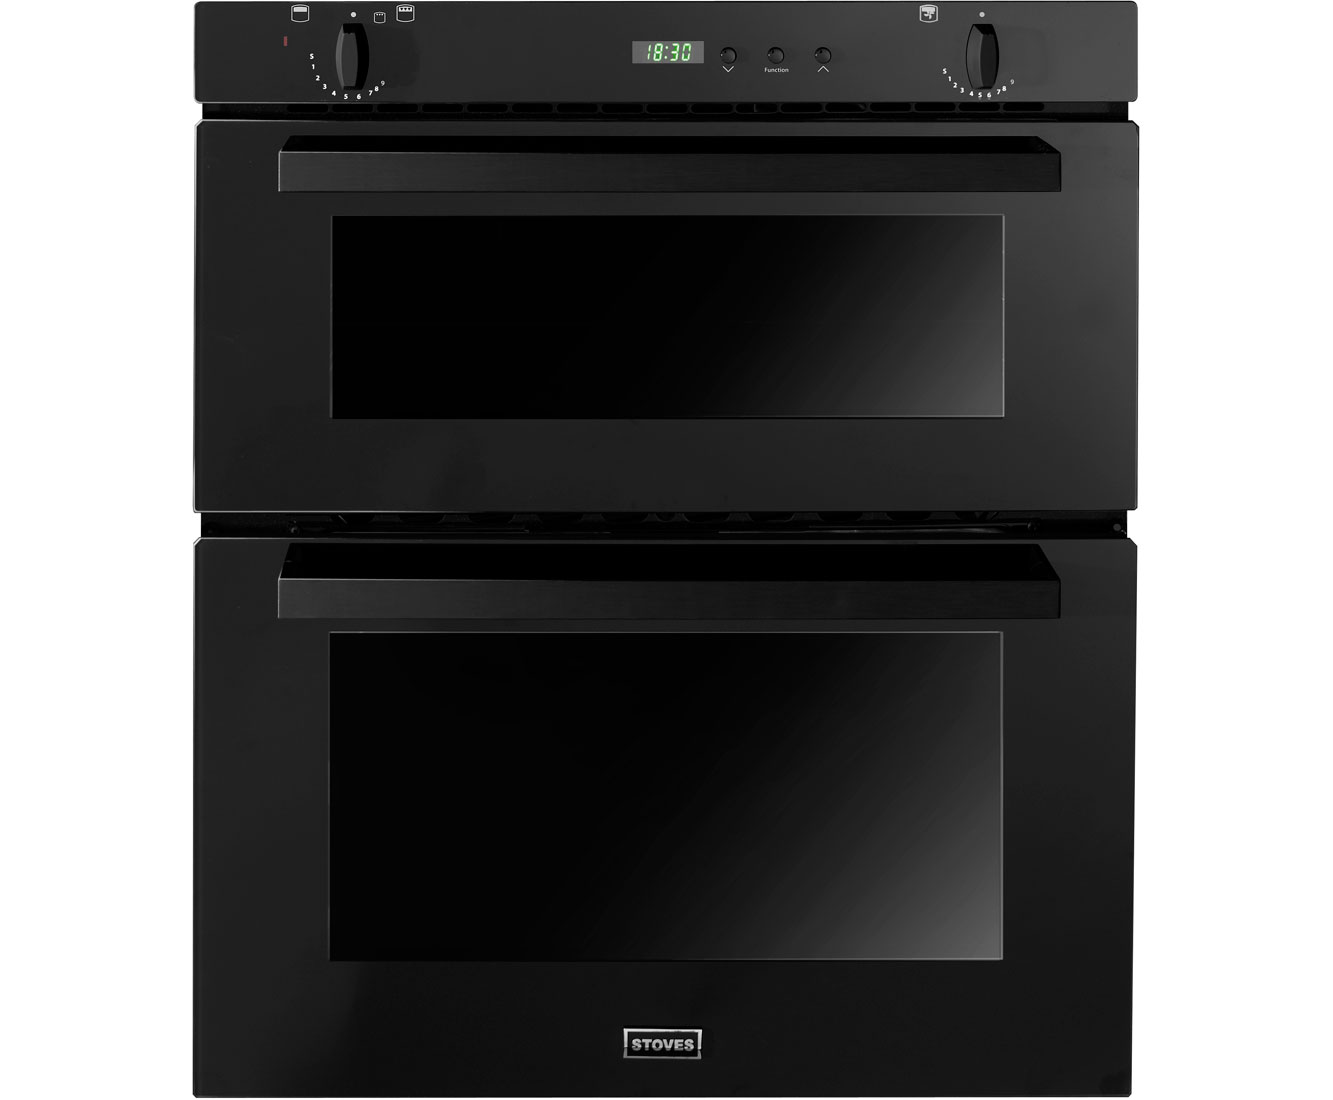 Details About Stoves SGB700PS Built Under 60cm B A Gas Double Oven Black New From AO